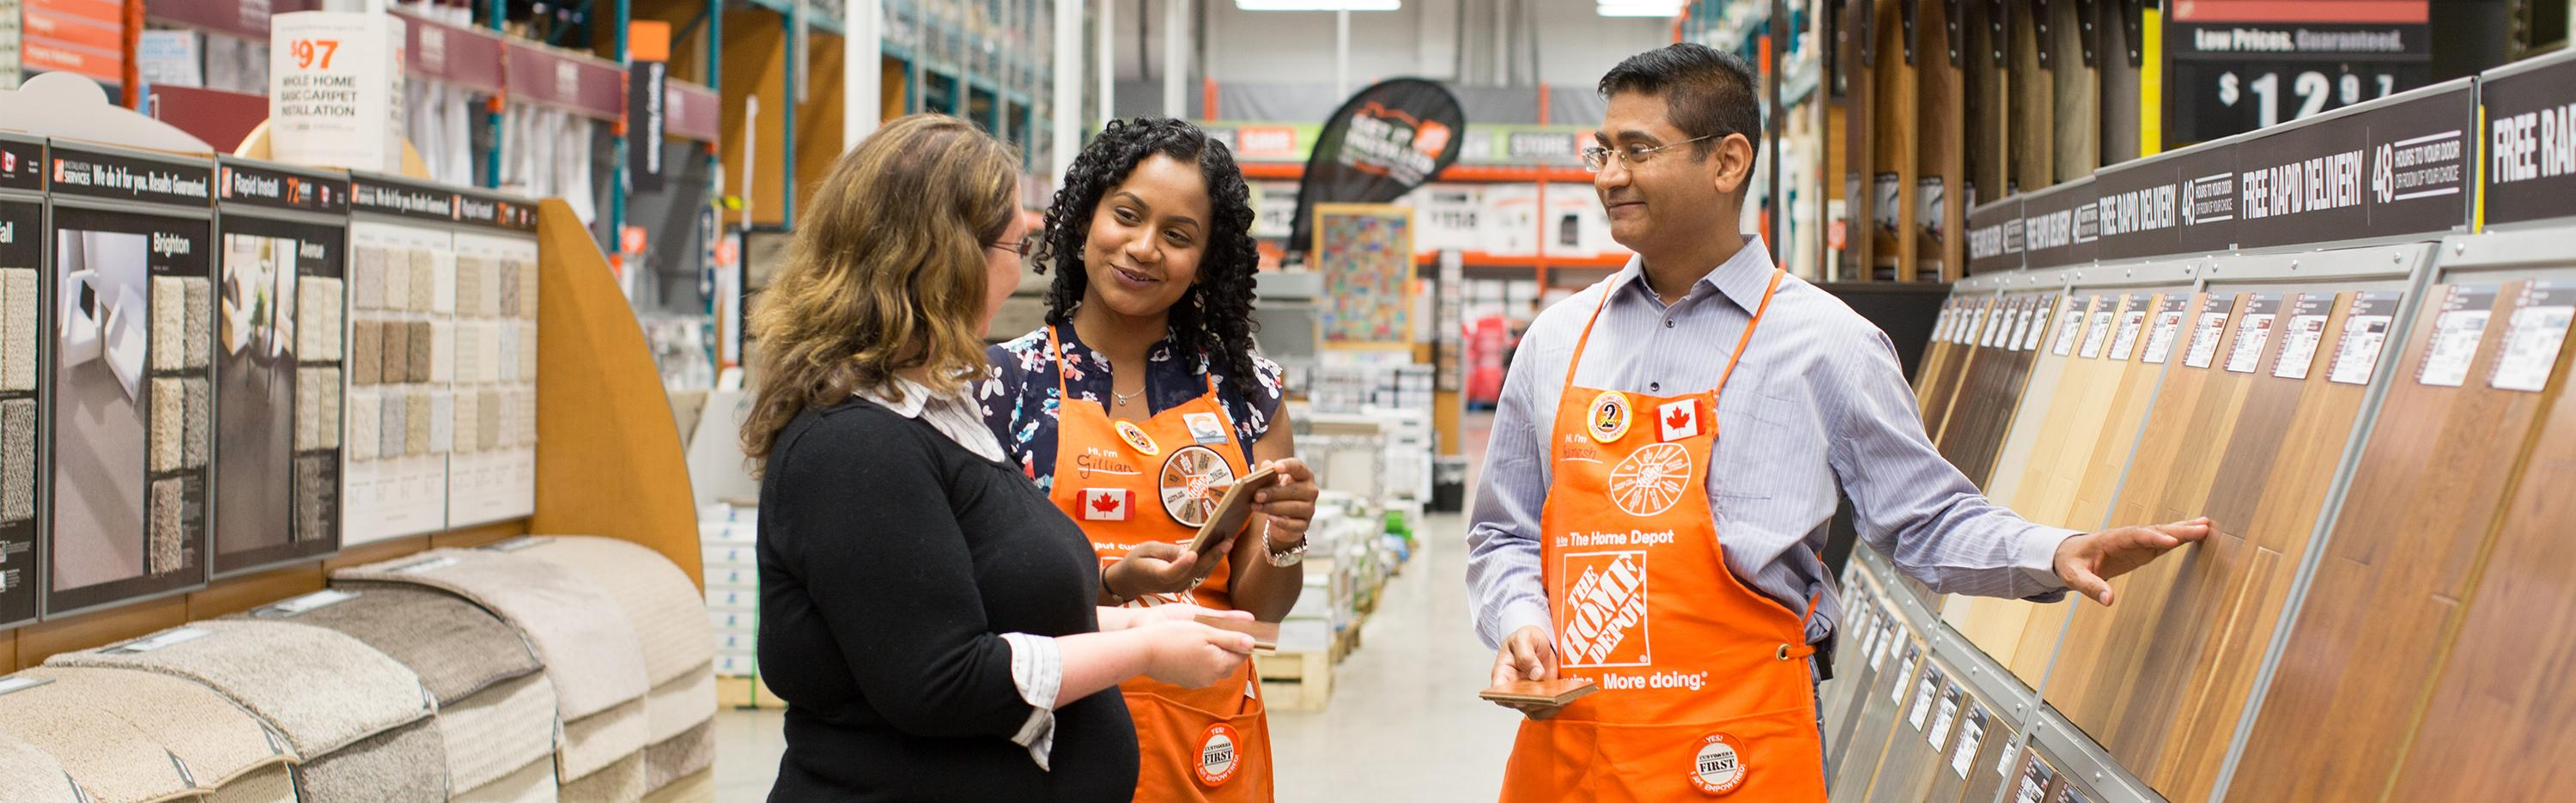 the home depot onboarding on go mobile lication enhances